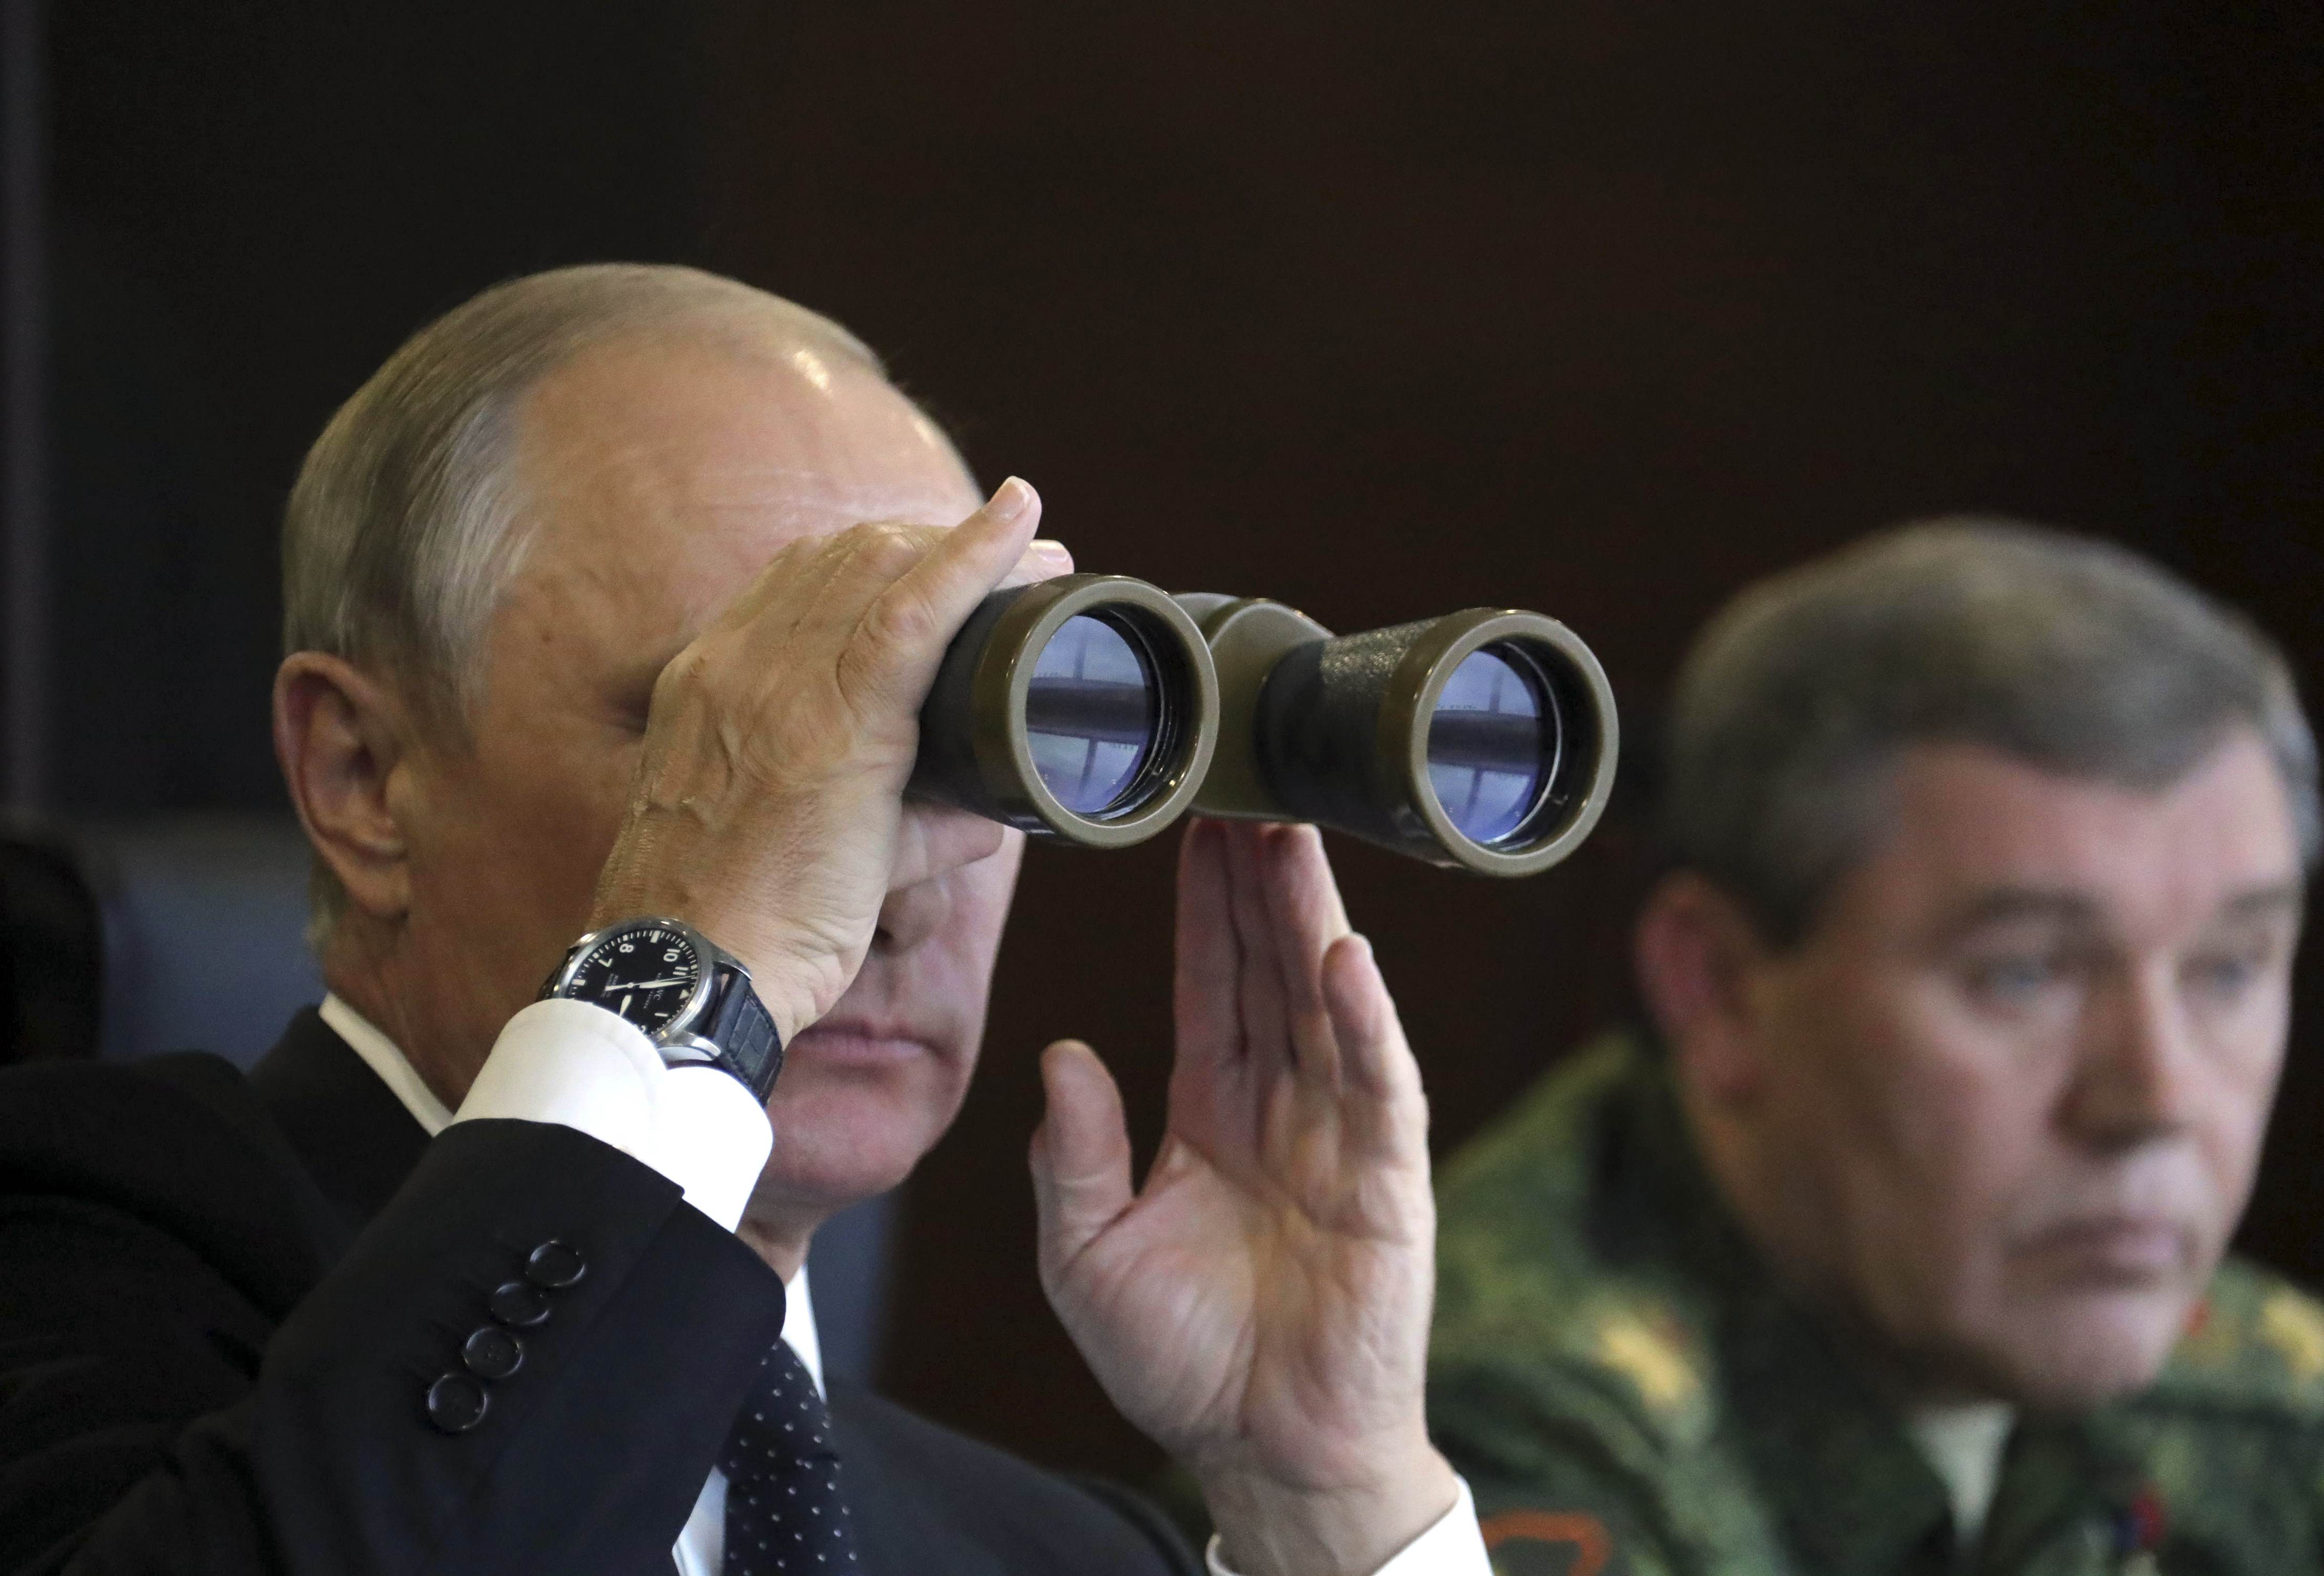 Russian President Vladimir Putin uses a pair of binoculars while watching the Zapad-2017 war games, held by Russian and Belarussian servicemen, with Chief of the General Staff of Russian Armed Forces Valery Gerasimov seen nearby, at a military training ground in the Leningrad region, Russia September 18, 2017.